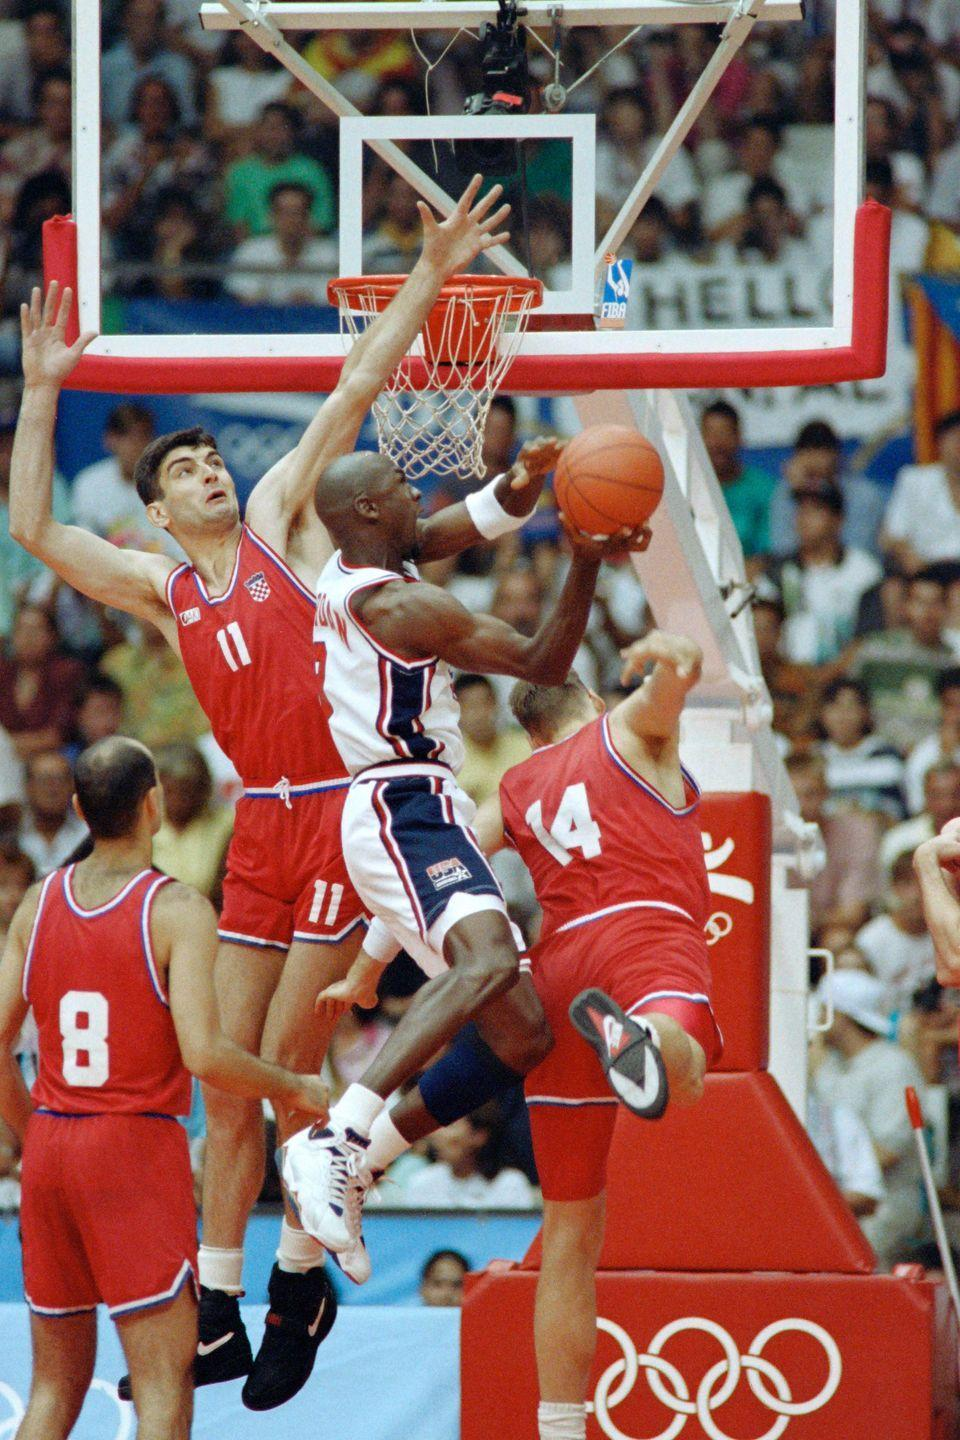 """<p>The U.S. took to the basketball court at the Barcelona Olympics with a """"Dream Team,"""" better known as Michael Jordan, Charles Barkley, Magic Johnson, Scottie Pippen, Larry Bird, Karl Malone, and Patrick Ewing.</p>"""